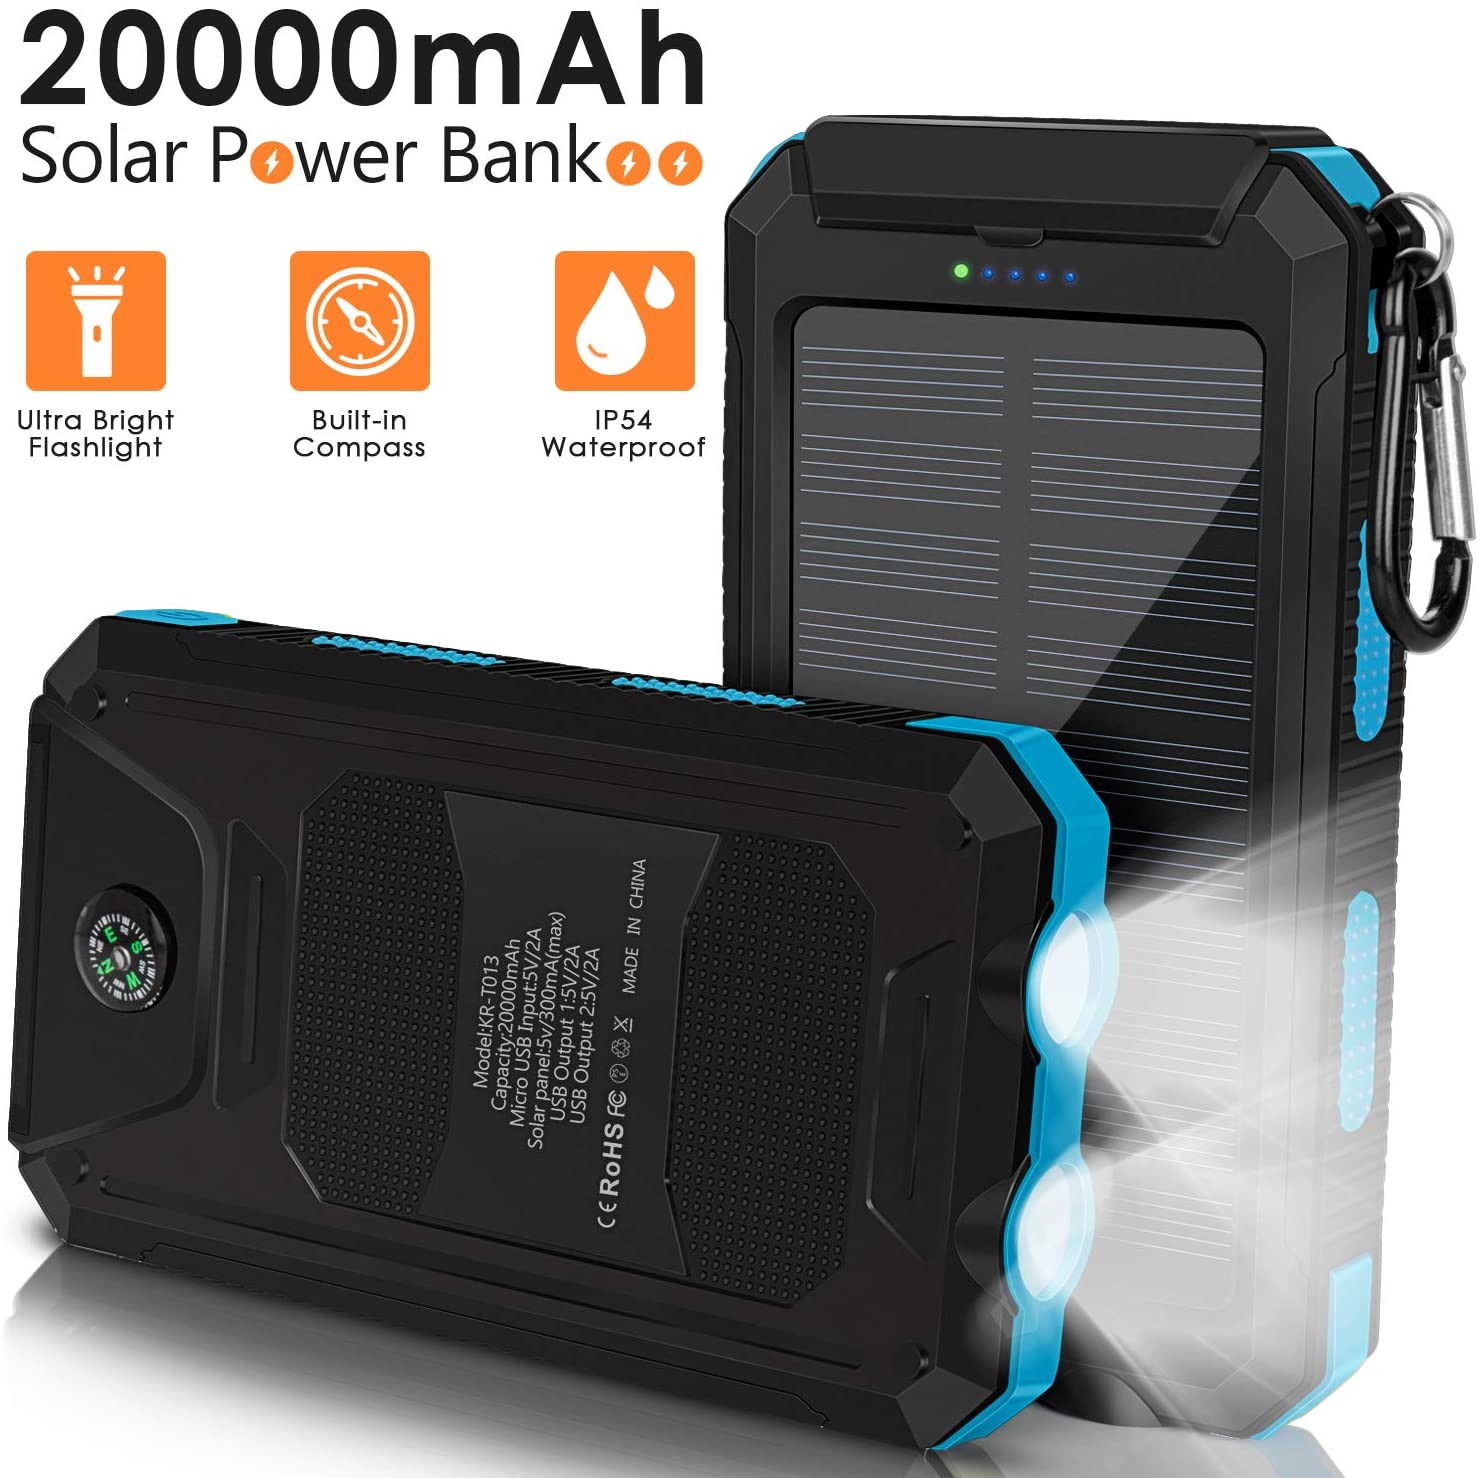 Solar Charger 20000mAh, Portable Solar Power Bank with 1.5W Efficient Solar Panel, Compass, LED Flashlight, 2 Output Ports, External Backup Battery for Camping Outdoor for Phones Tablets and More-Blue